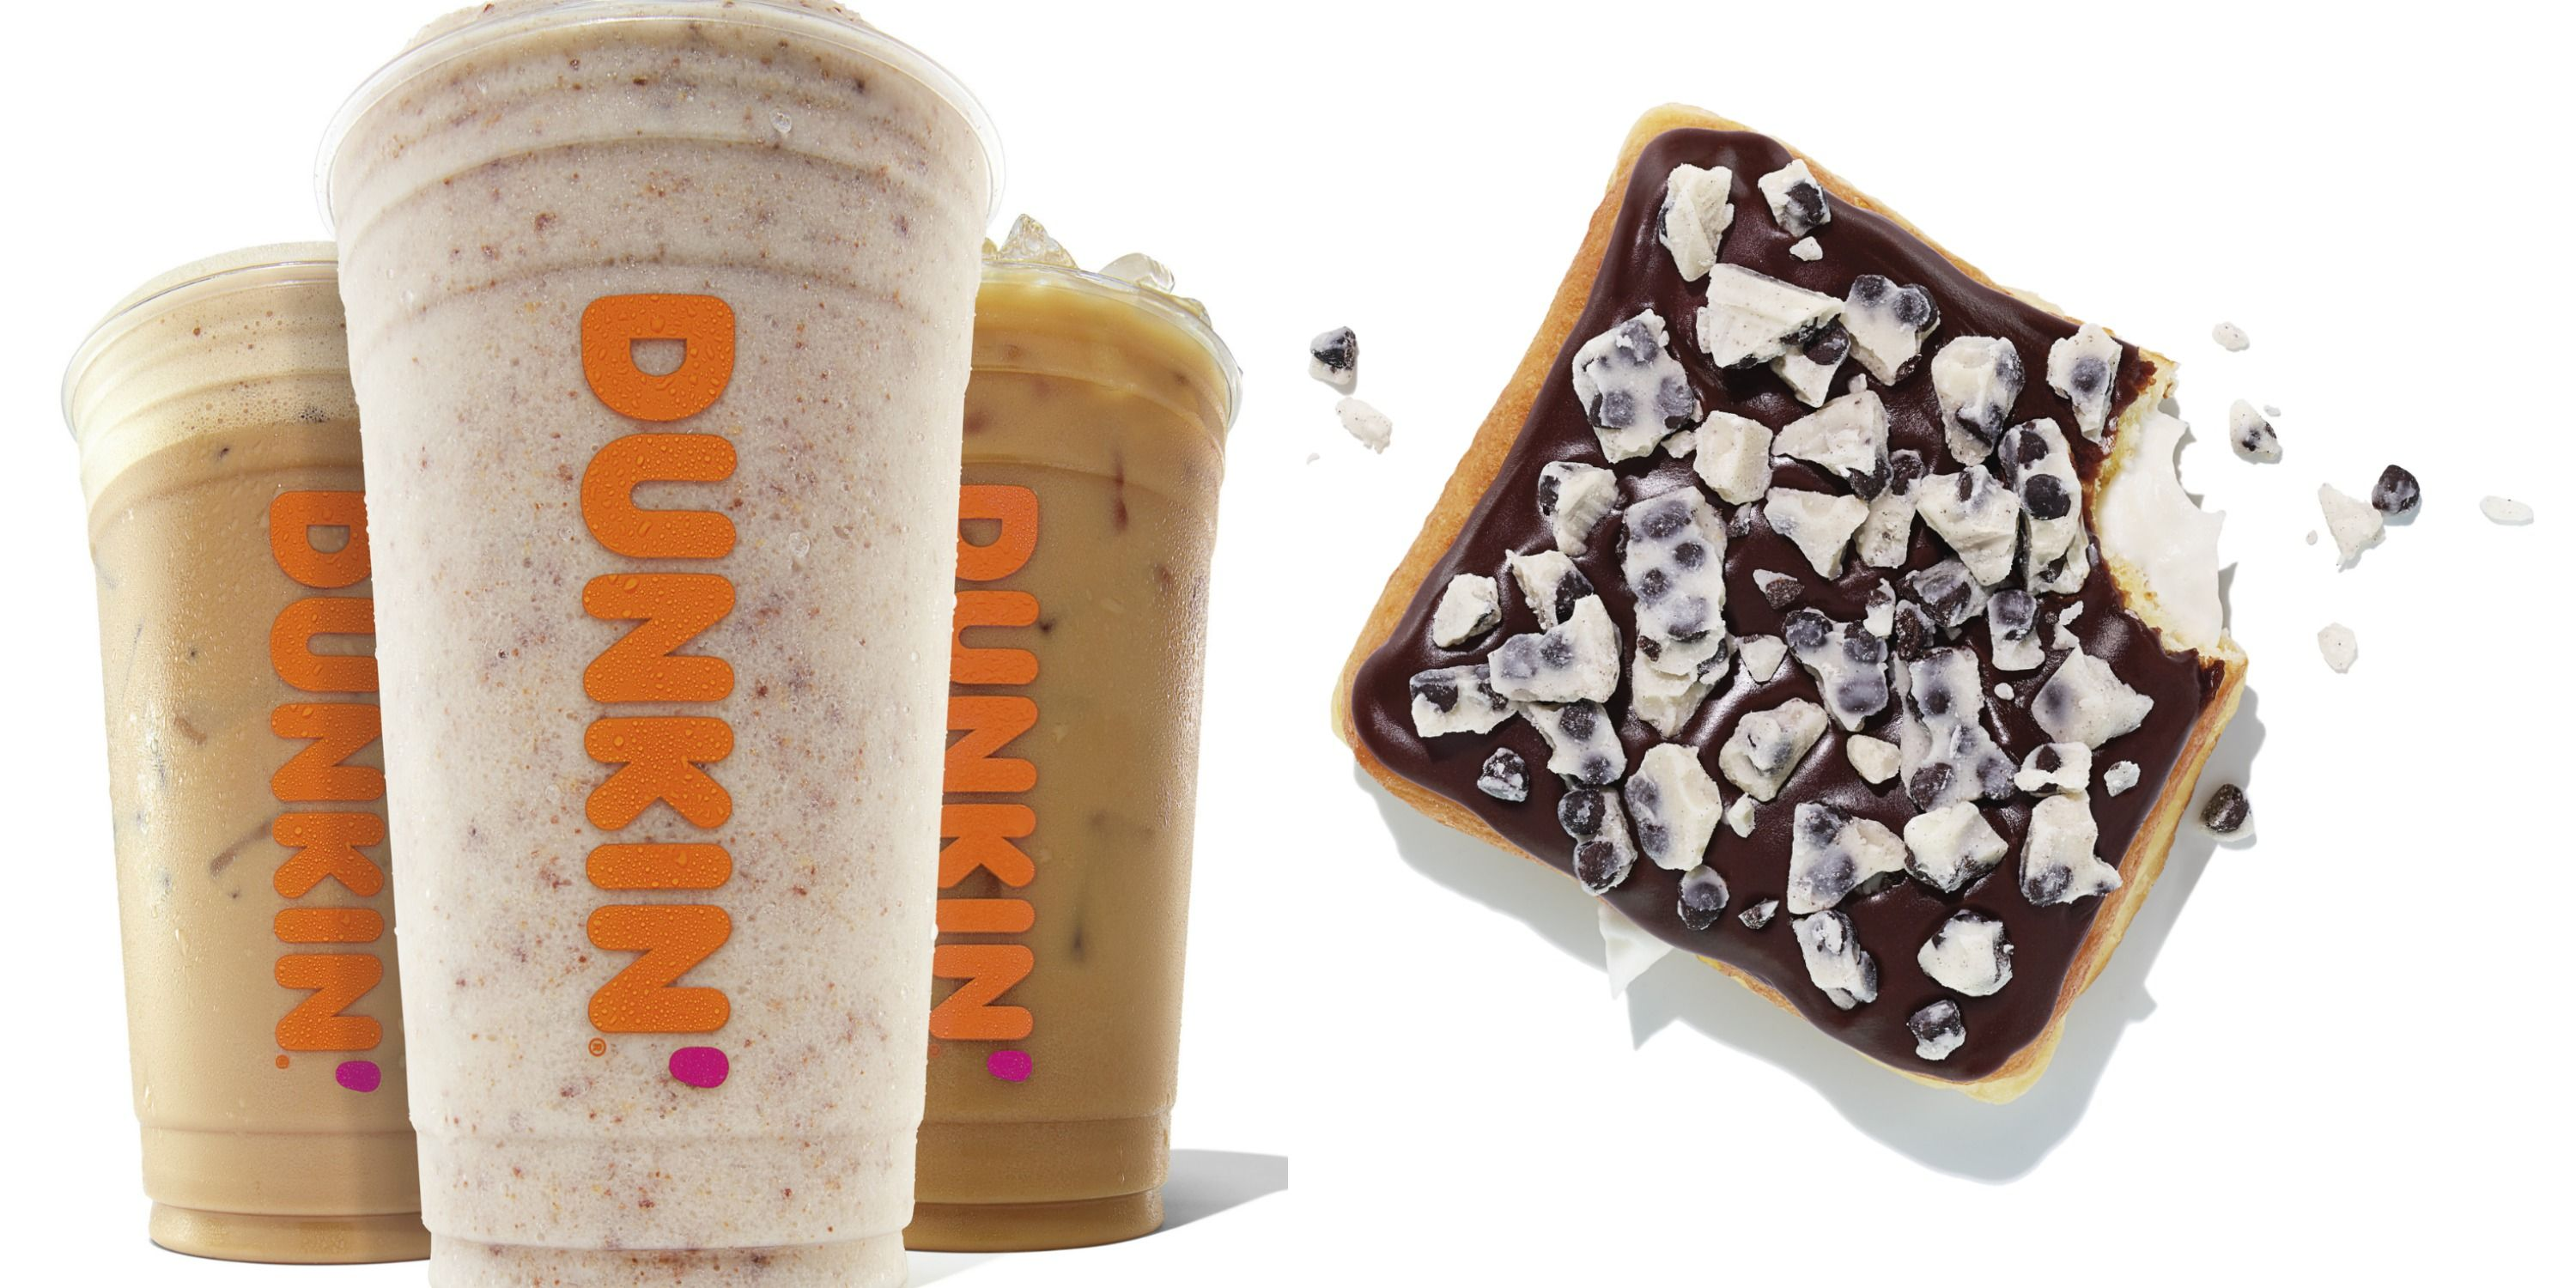 Dunkin's Summer Coffee Line-Up Is A Candy Lover's Dream